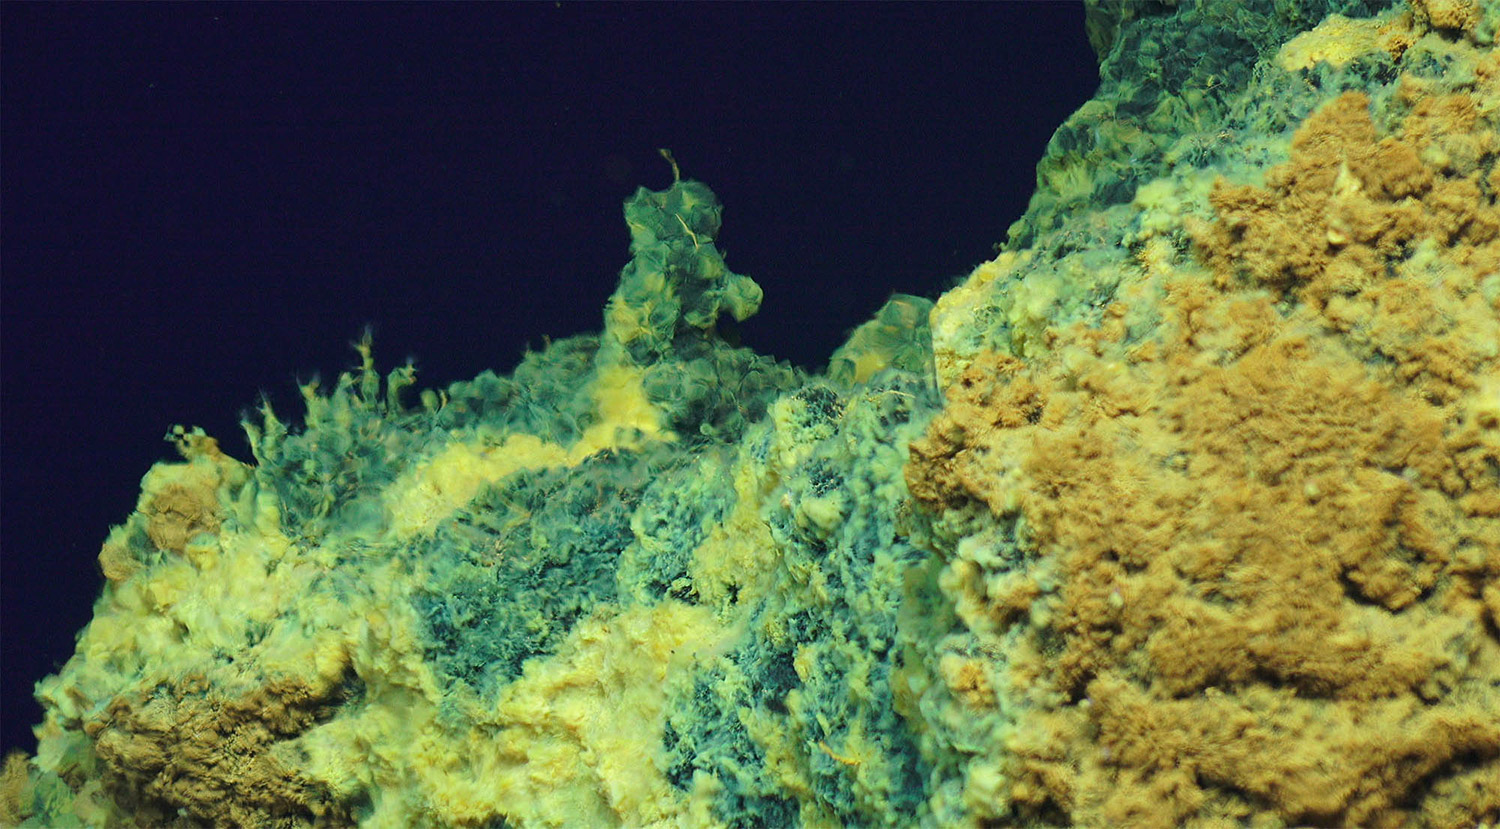 Microbes like these are able to survive in conditions that humans and many other organisms would consider far too hostile to life. (Anna-Louise Reysenbach, chief scientist, Portland State University; Funder, NSF; ROV Jason. © Woods Hole Oceanographic Institution)